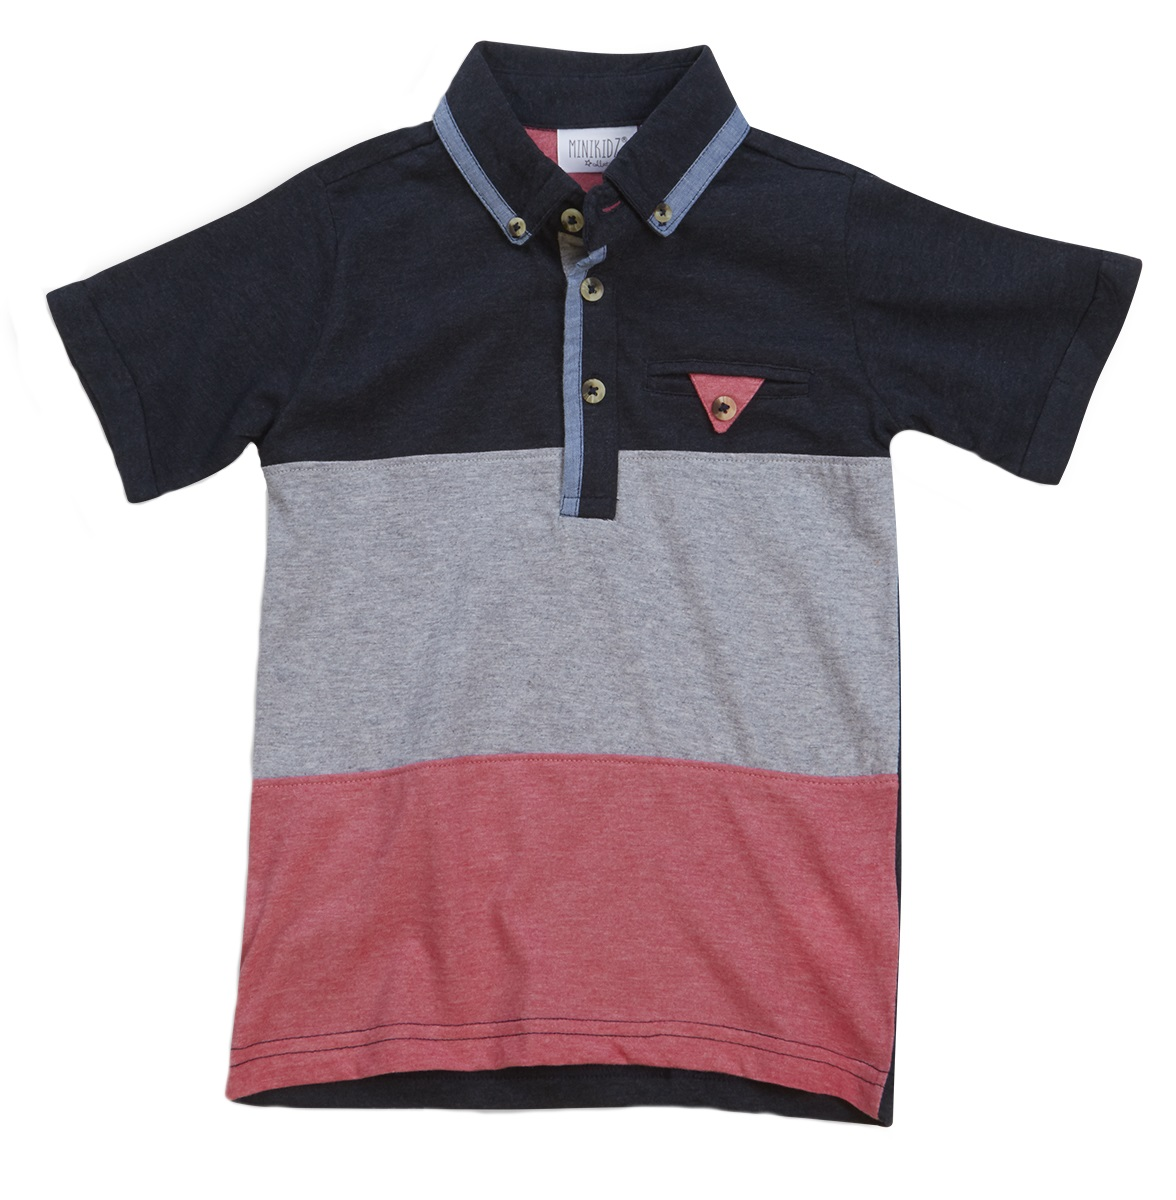 Free shipping BOTH ways on Shirts & Tops, Boys, from our vast selection of styles. Fast delivery, and 24/7/ real-person service with a smile. Click or call